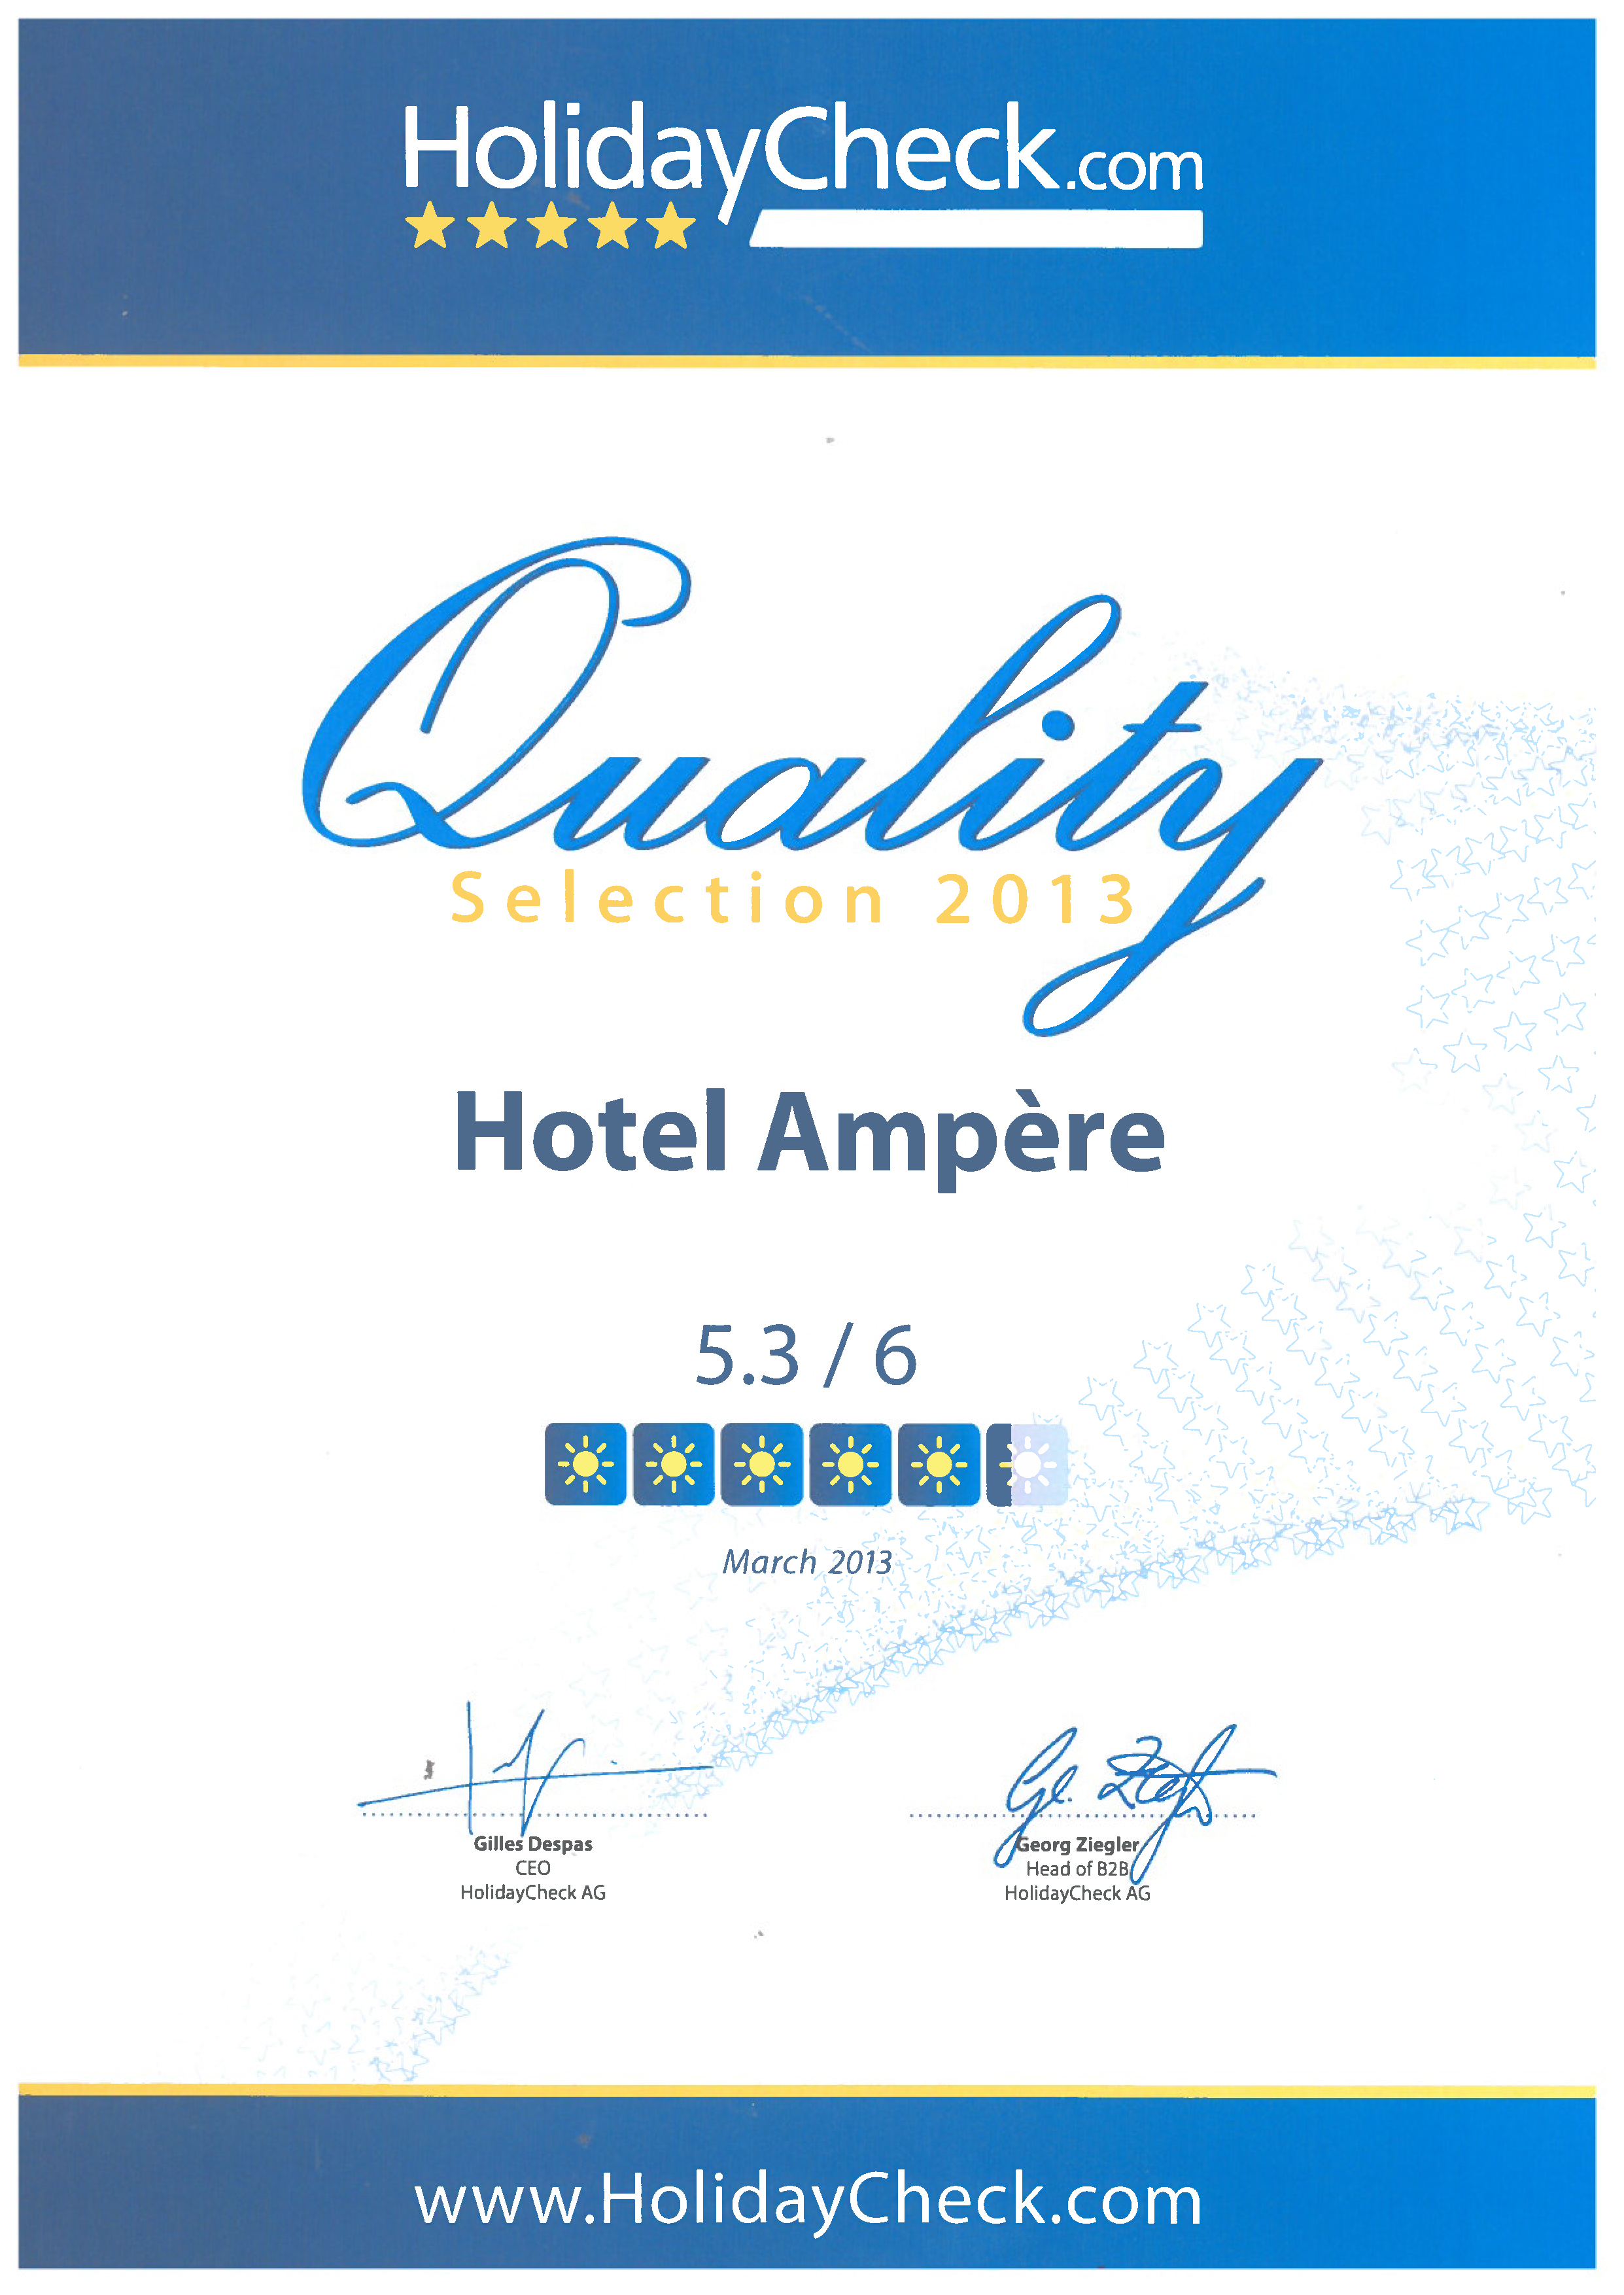 HolidayCheck certificat 2013